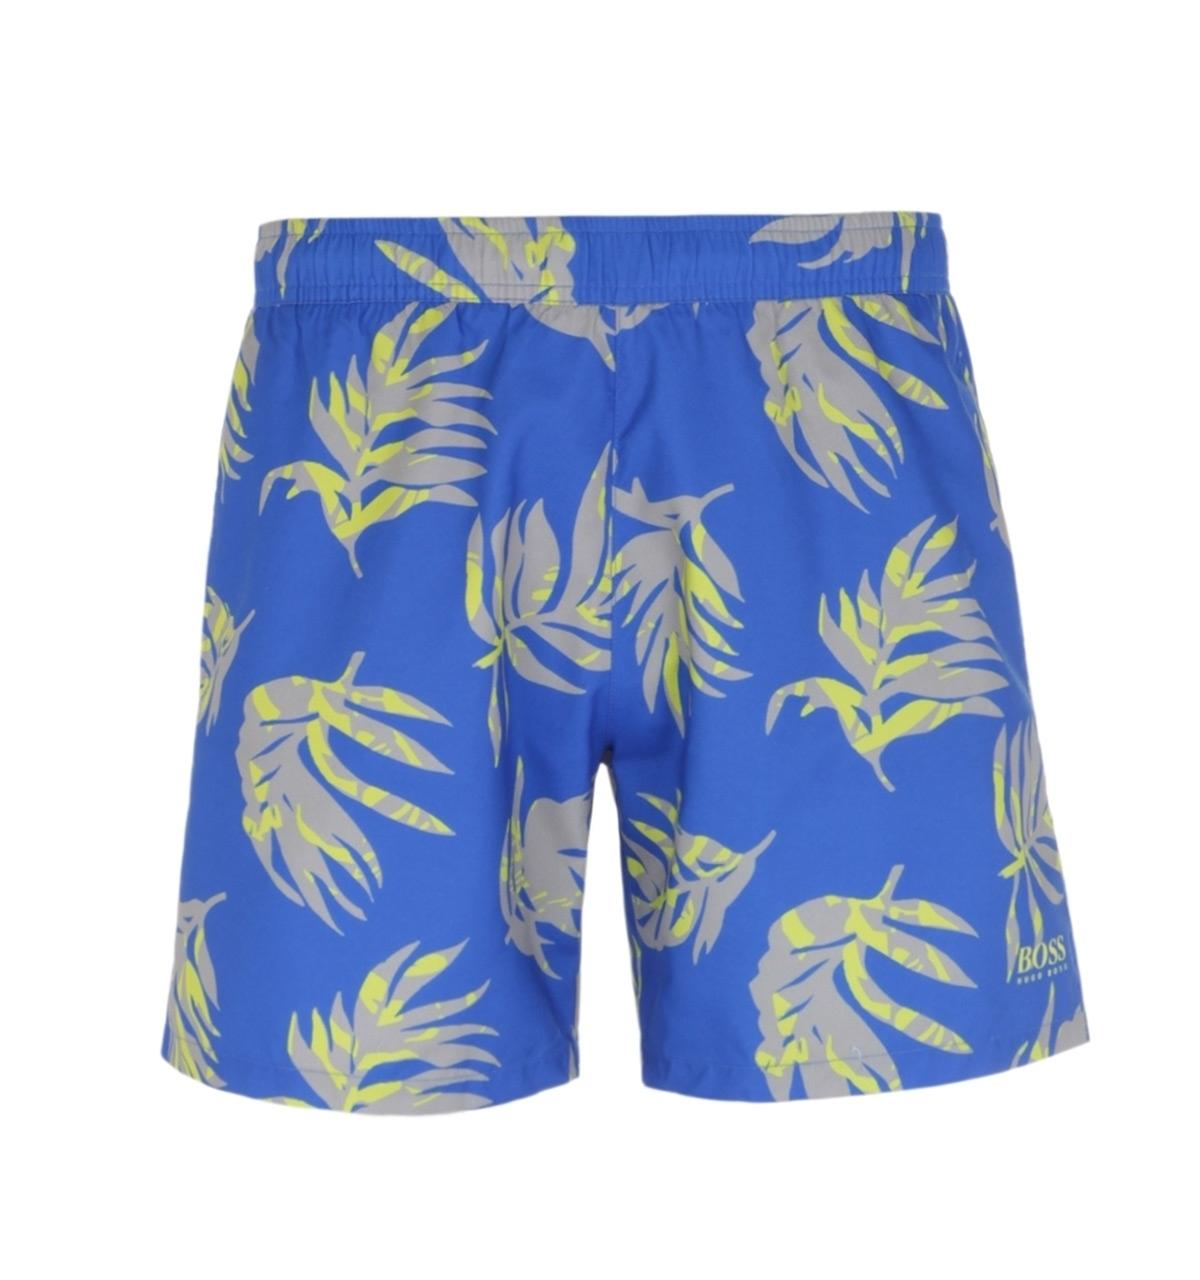 JERECY Mens Swim Trunks Dolphin Anchor Pattern Quick Dry Board Shorts with Drawstring and Pockets